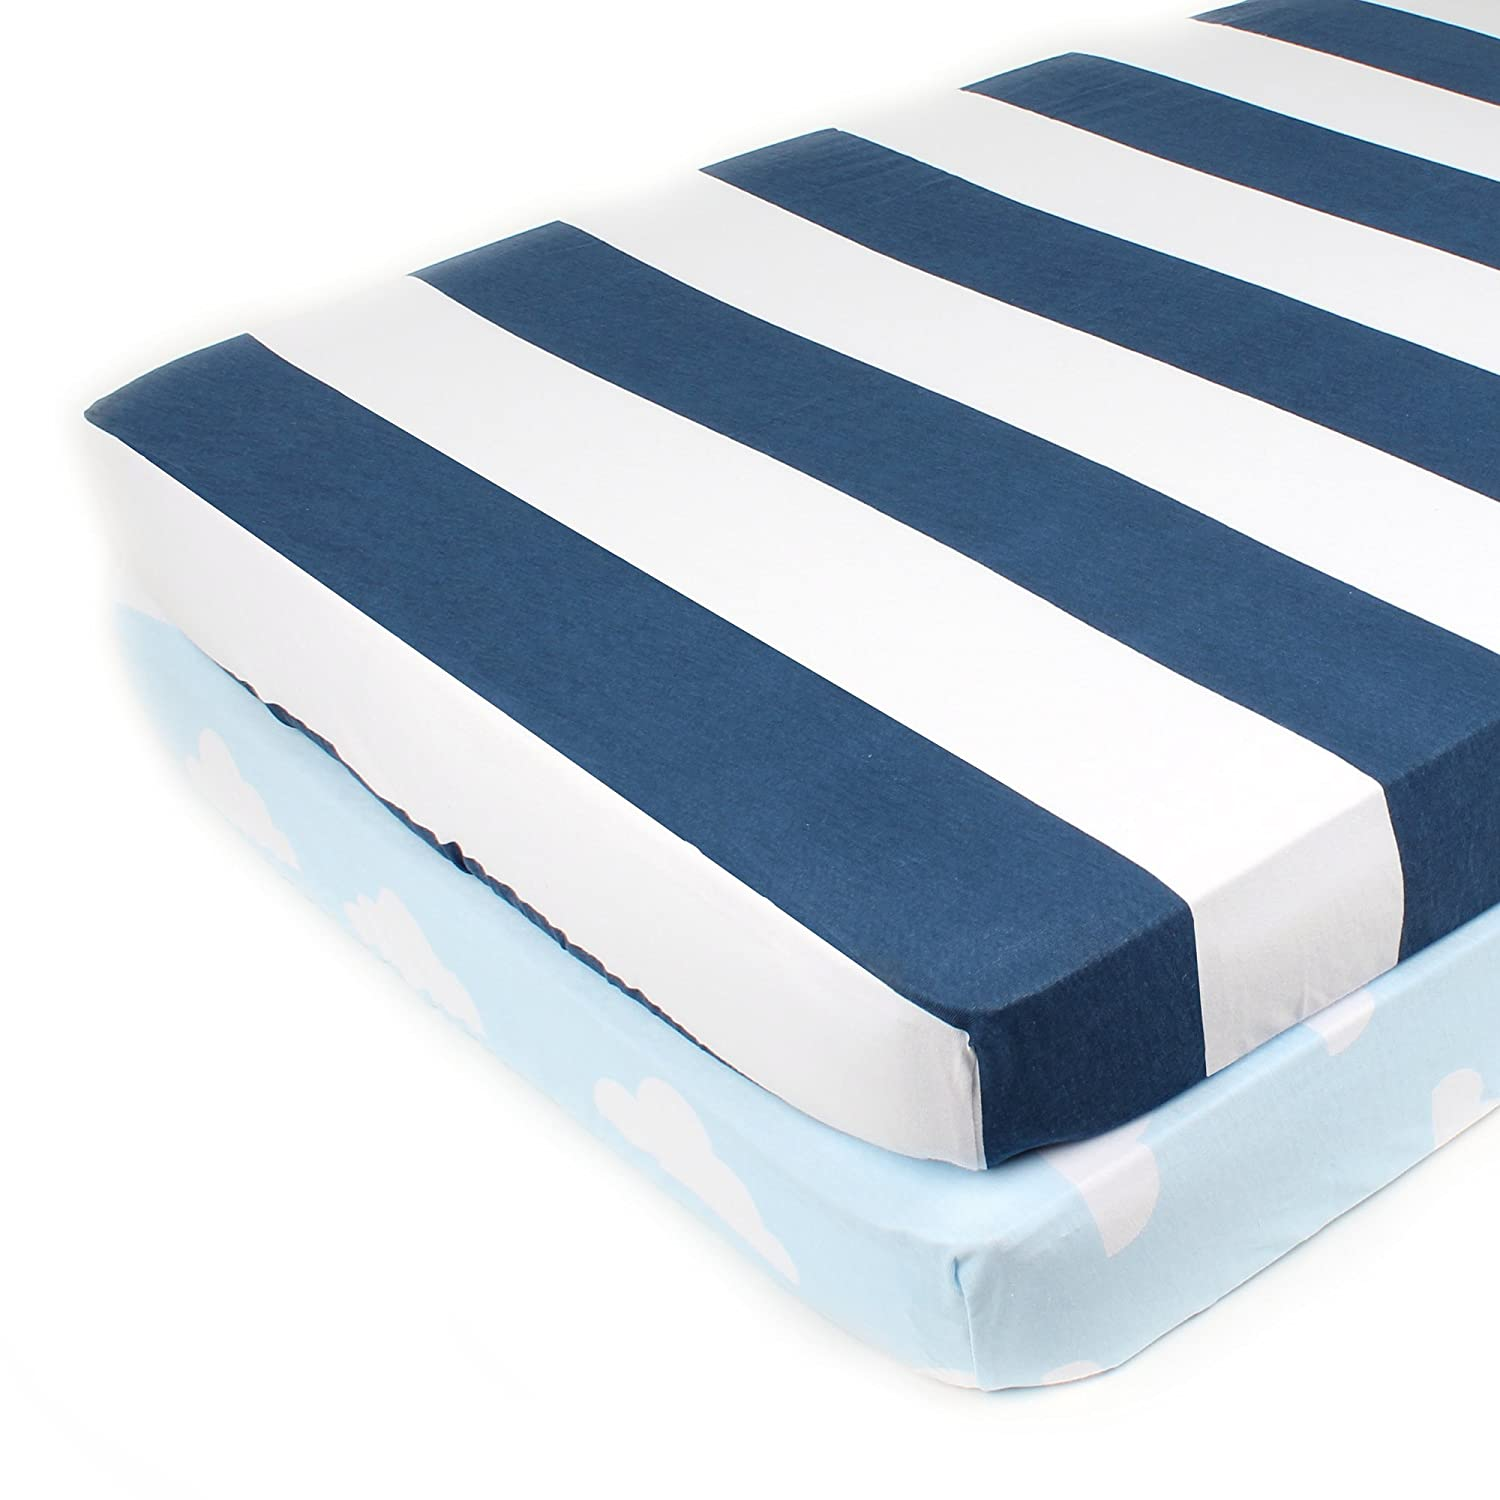 Pack N Play Playard Sheet Set - - Fitted, Soft Jersey Cotton Portable Crib Sheet - Baby Bedding in Blue Stripes & Clouds by Mumby by Mumby   B01F1OTVM2